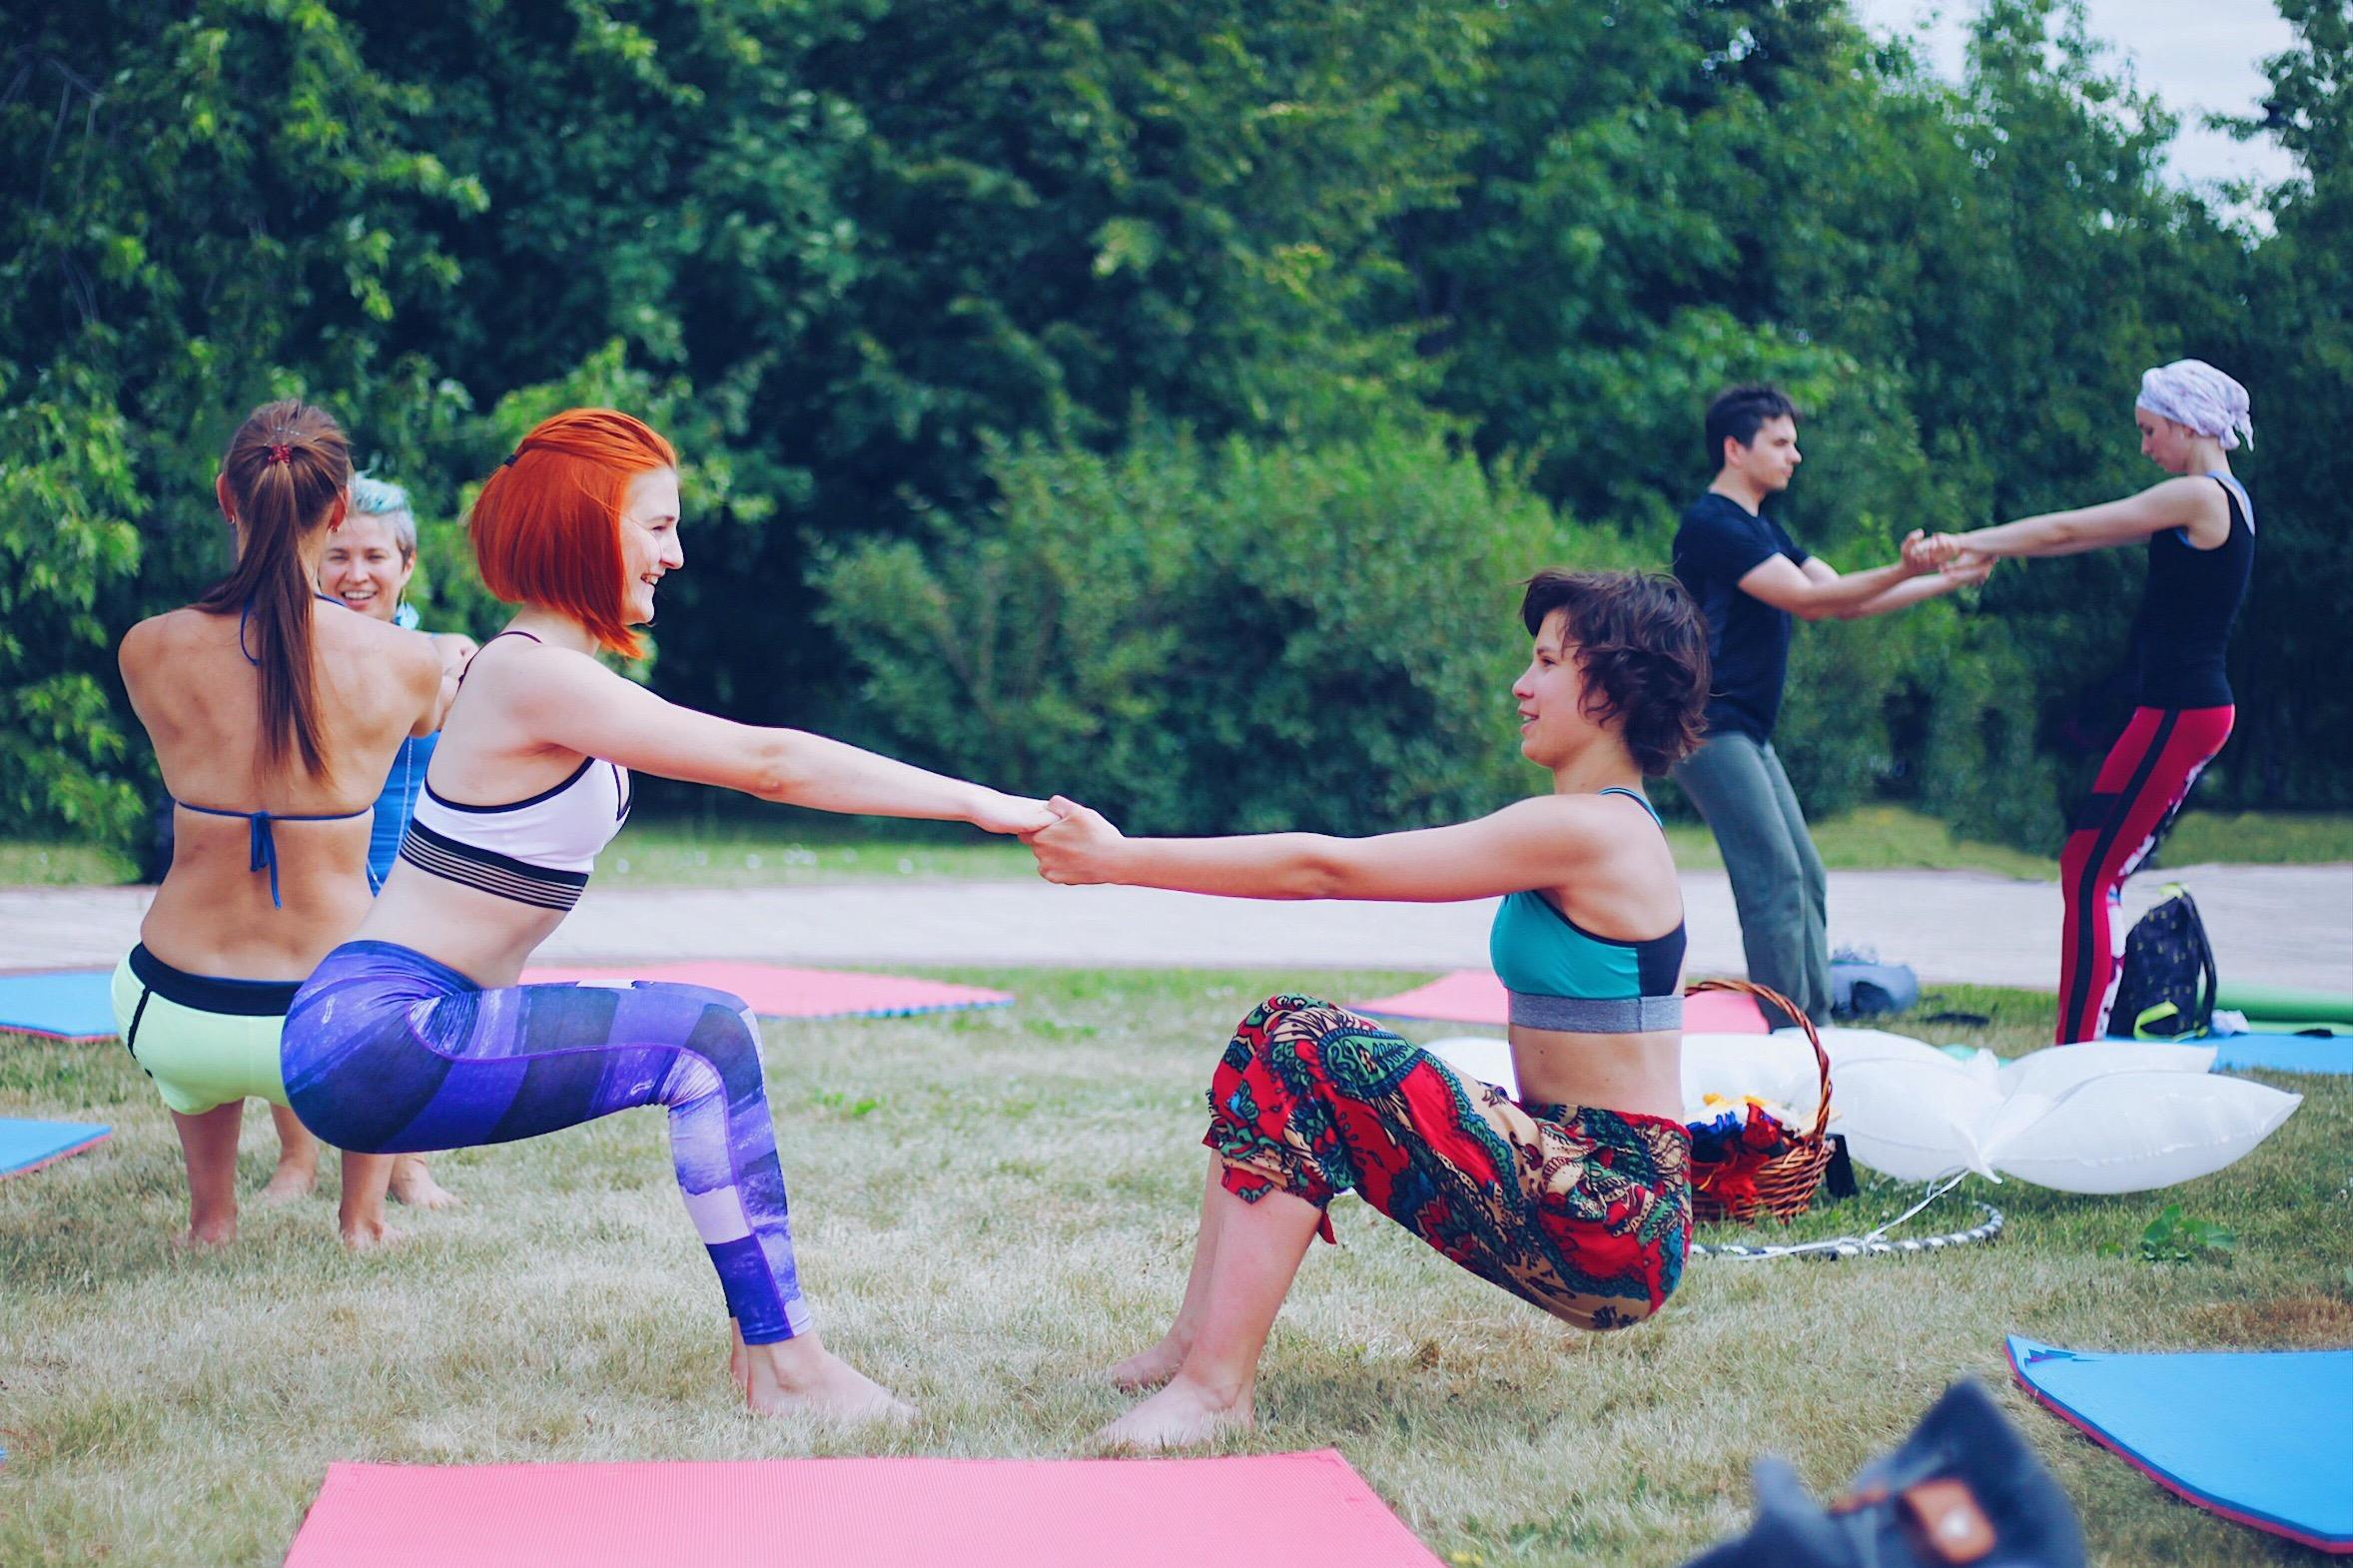 Breathe + Bubbles: Yoga Practice Dedicated to Playful Truths